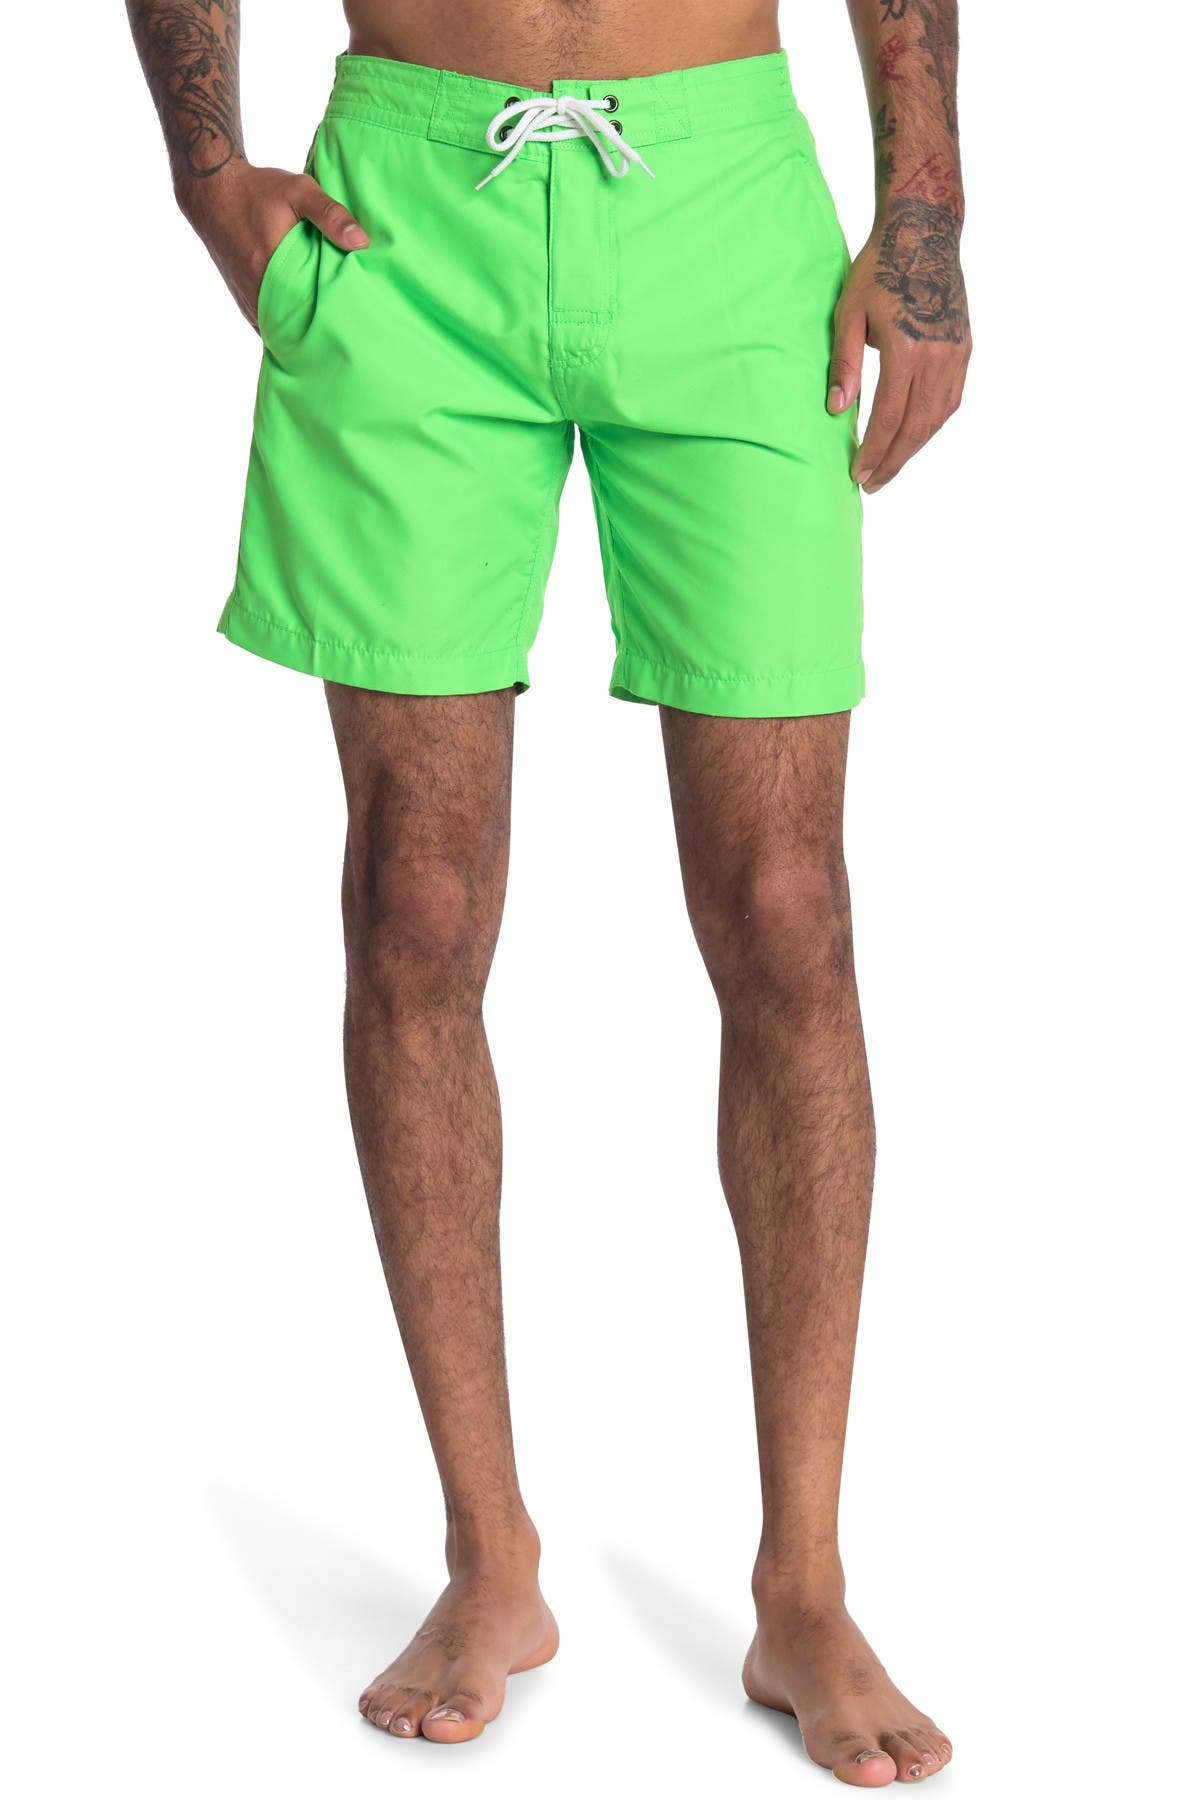 Image of Trunks Surf and Swim CO. Swami Board Shorts